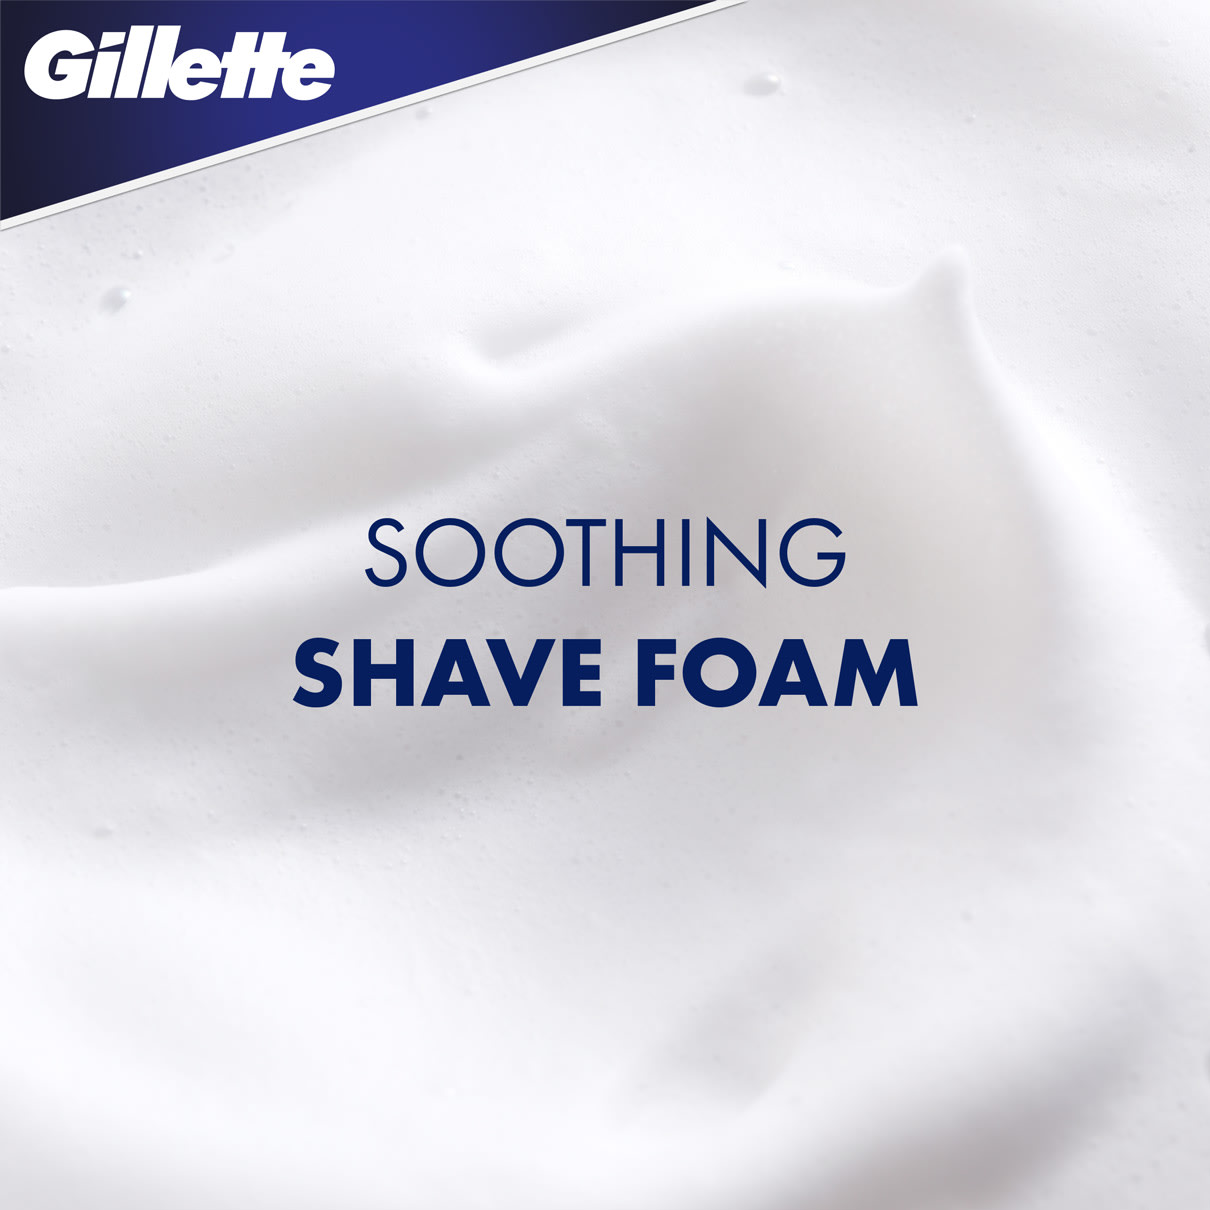 Soothing Shave Foam